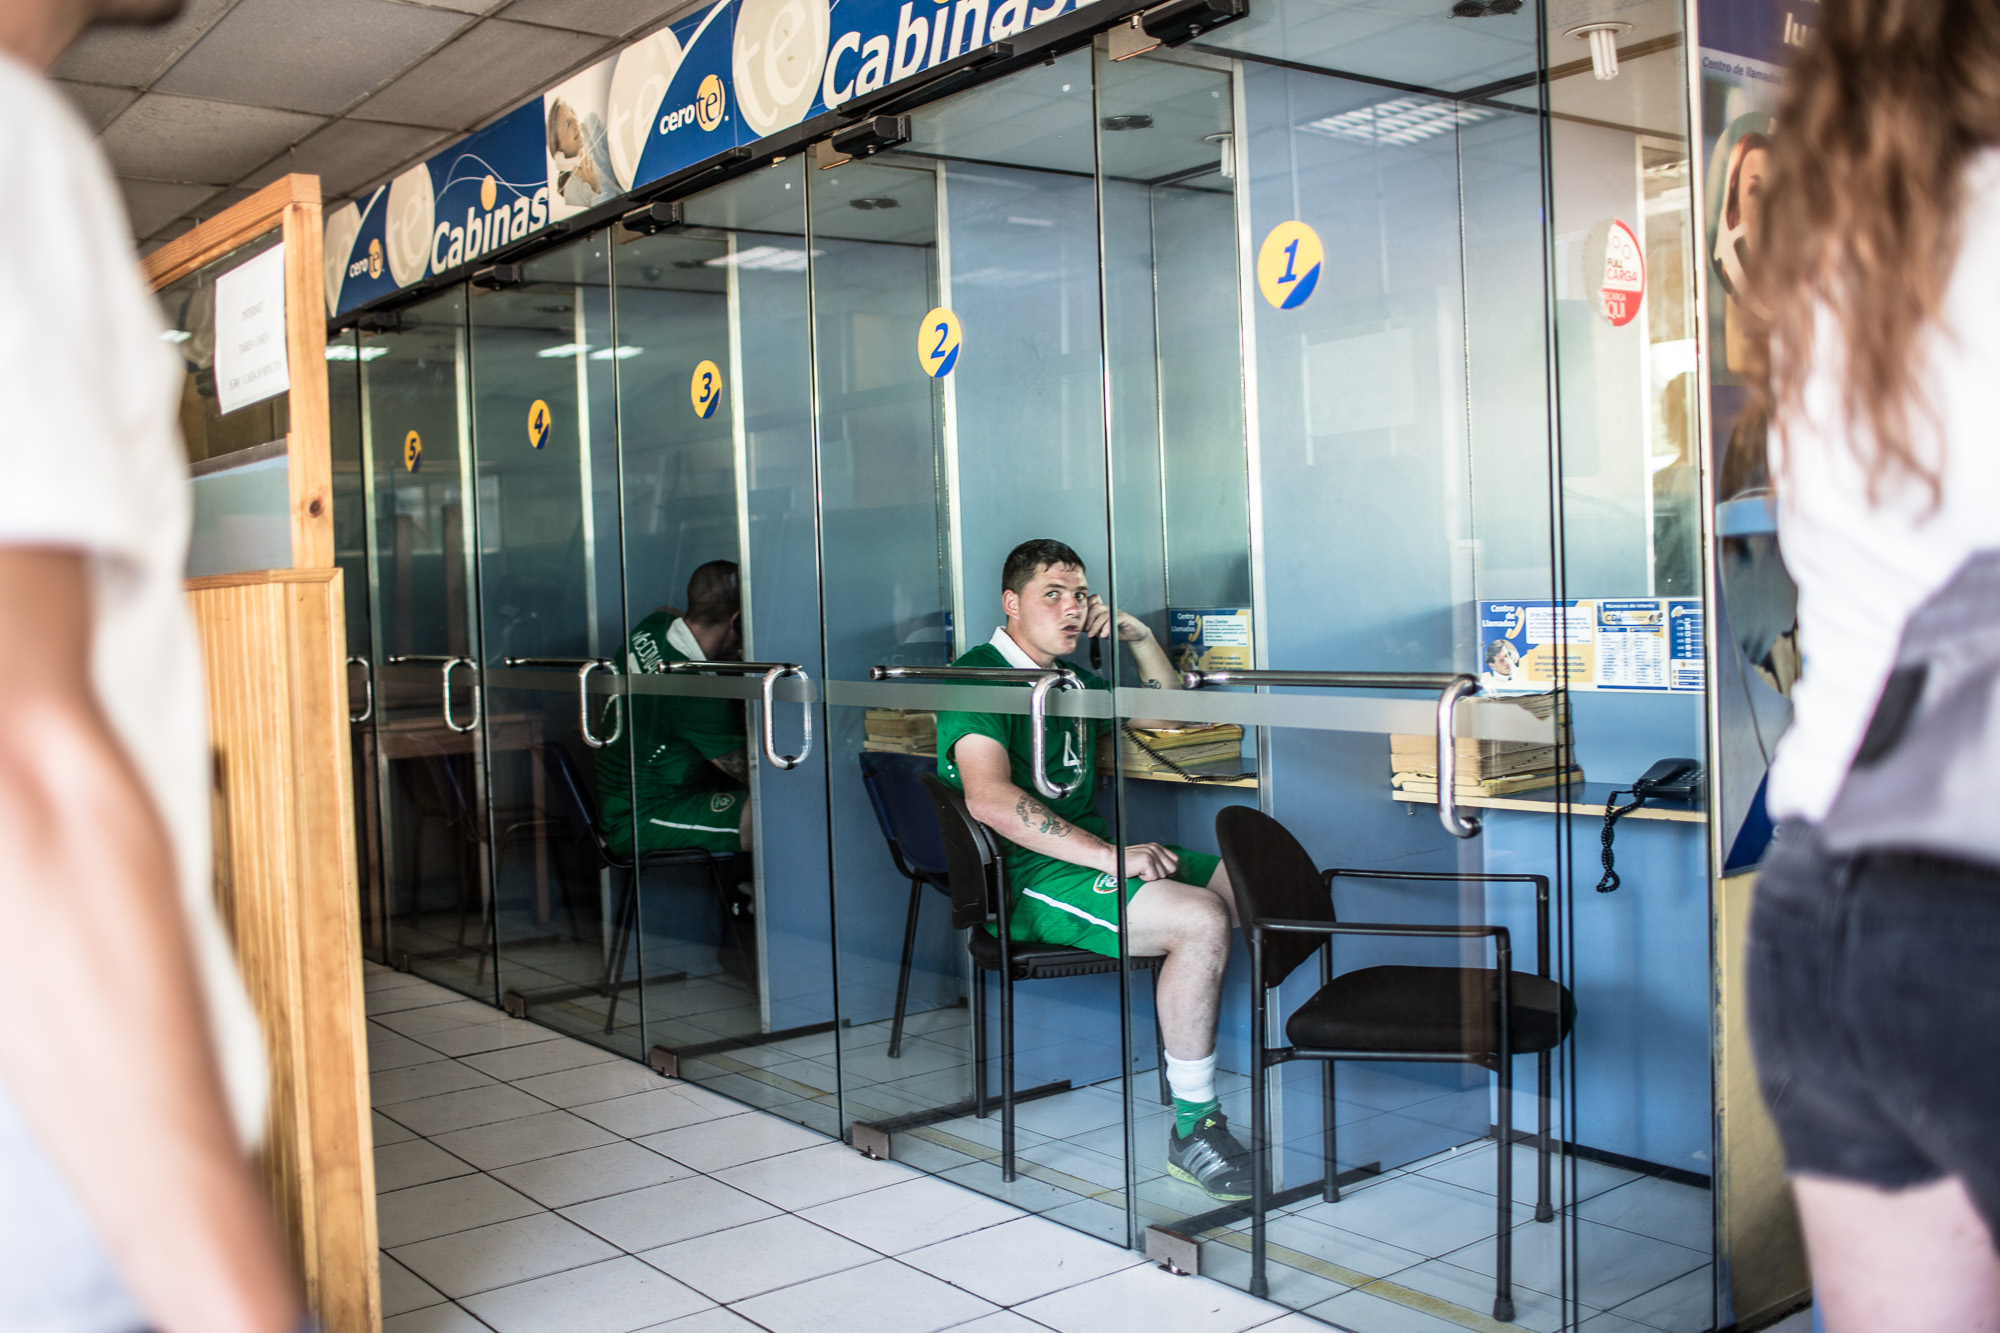 Darragh from the Republic of Ireland takes time out in the busy schedule of play to call home in a nearby café. With 350 fast paced games to get through within a week, play sometimes continues until after dark, with the teams passionately battling for points.  Unlike other tournaments, it is not a knock out competition through the group stages, meaning team have to be prepared mentally and physically to play every day.